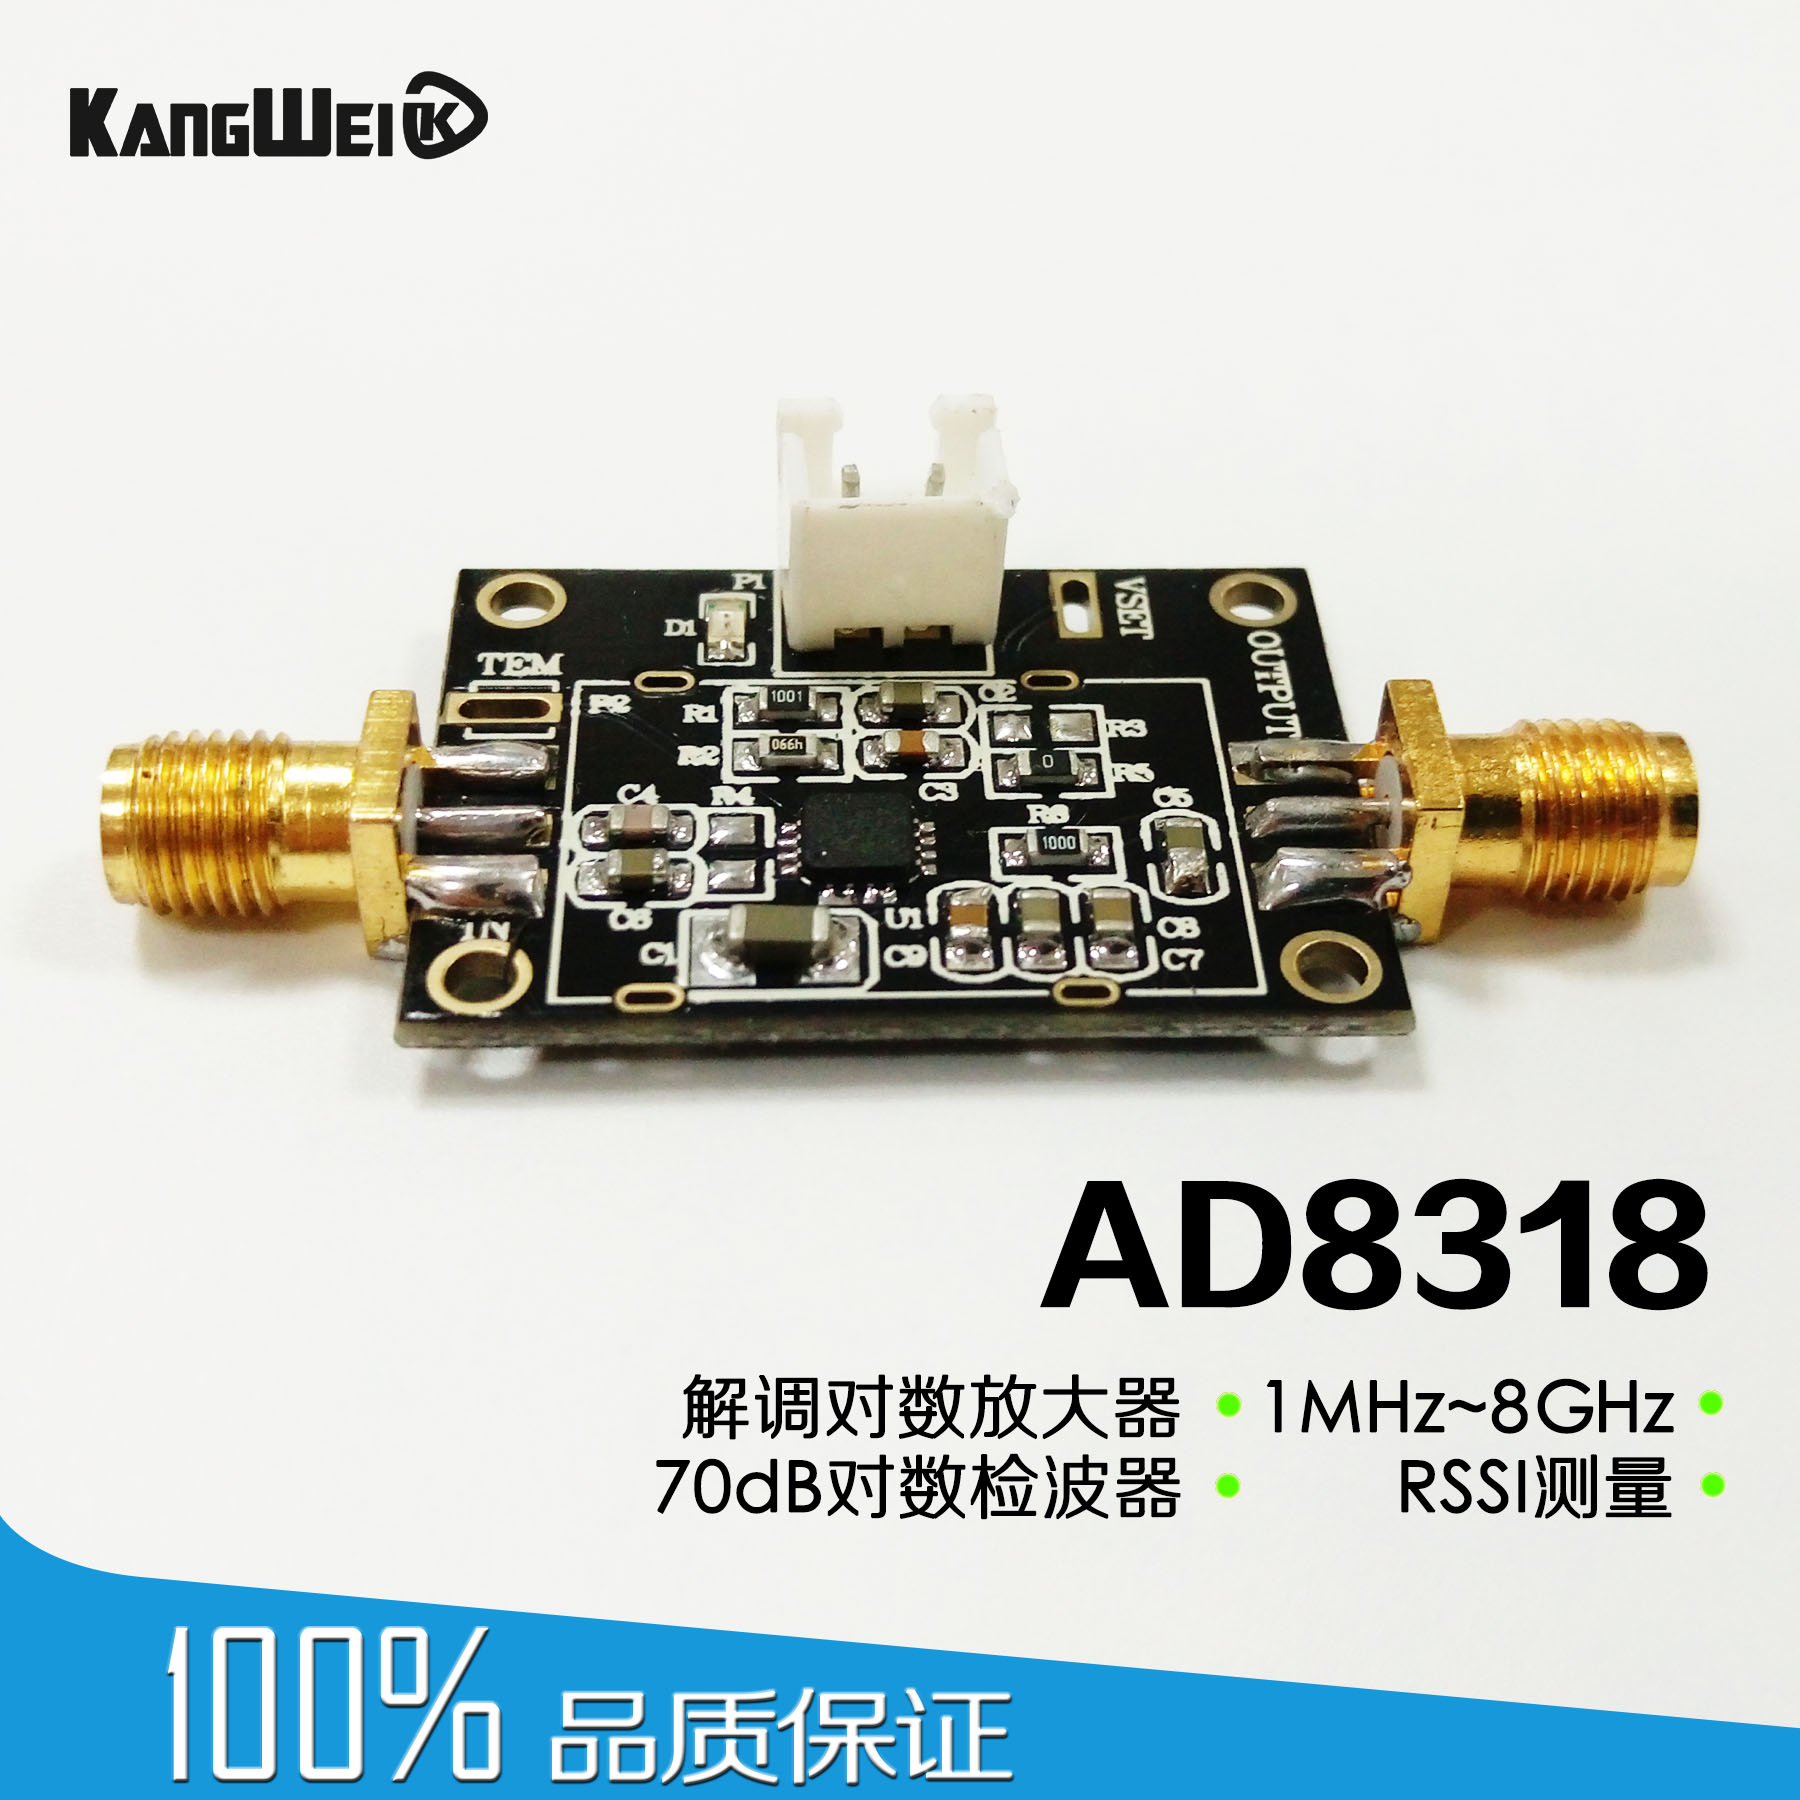 AD8318 module, logarithmic detection power detection module, 1M-8GHz, RSSI, RF power meter цена и фото